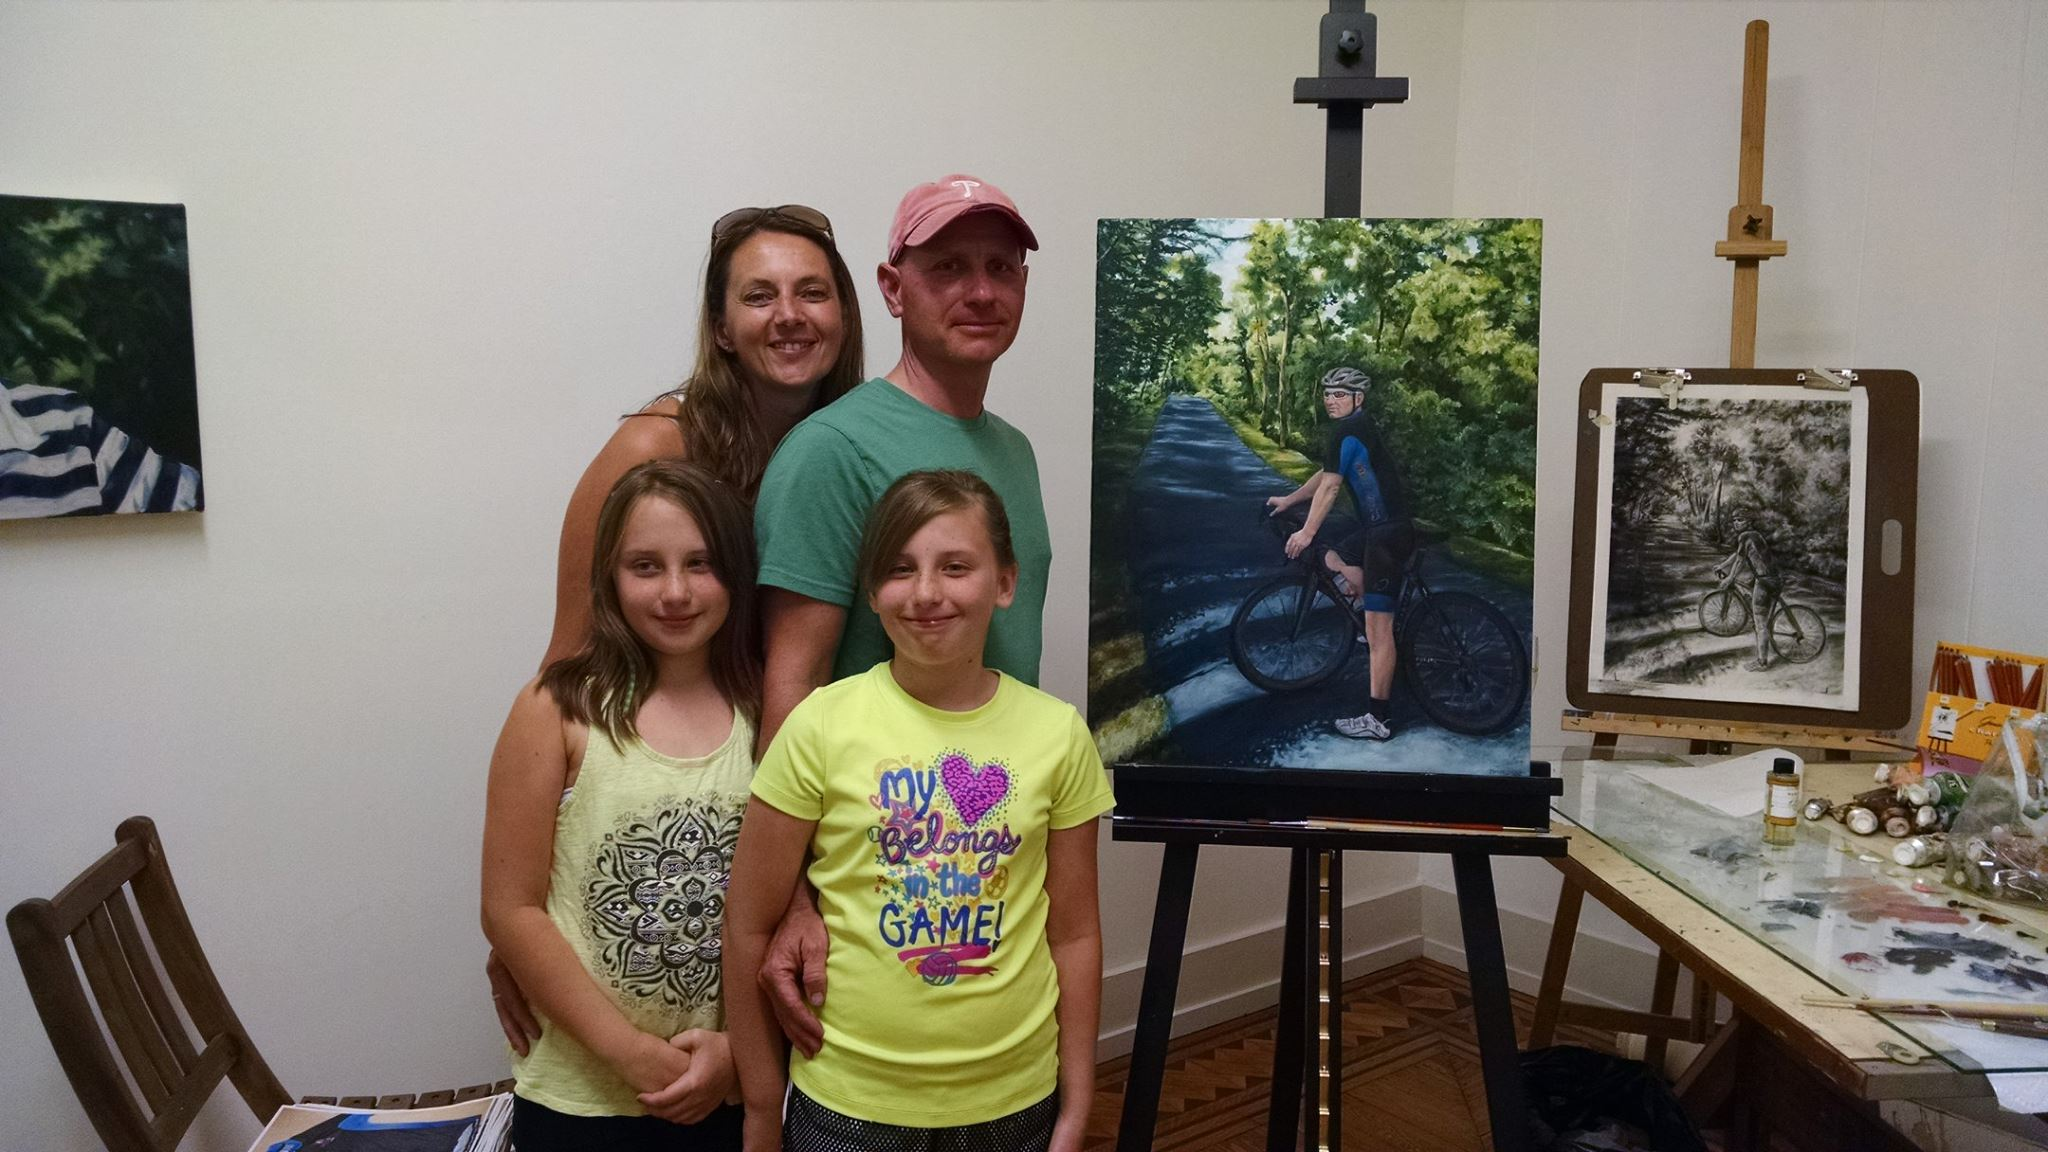 Bitner Family with their portrait